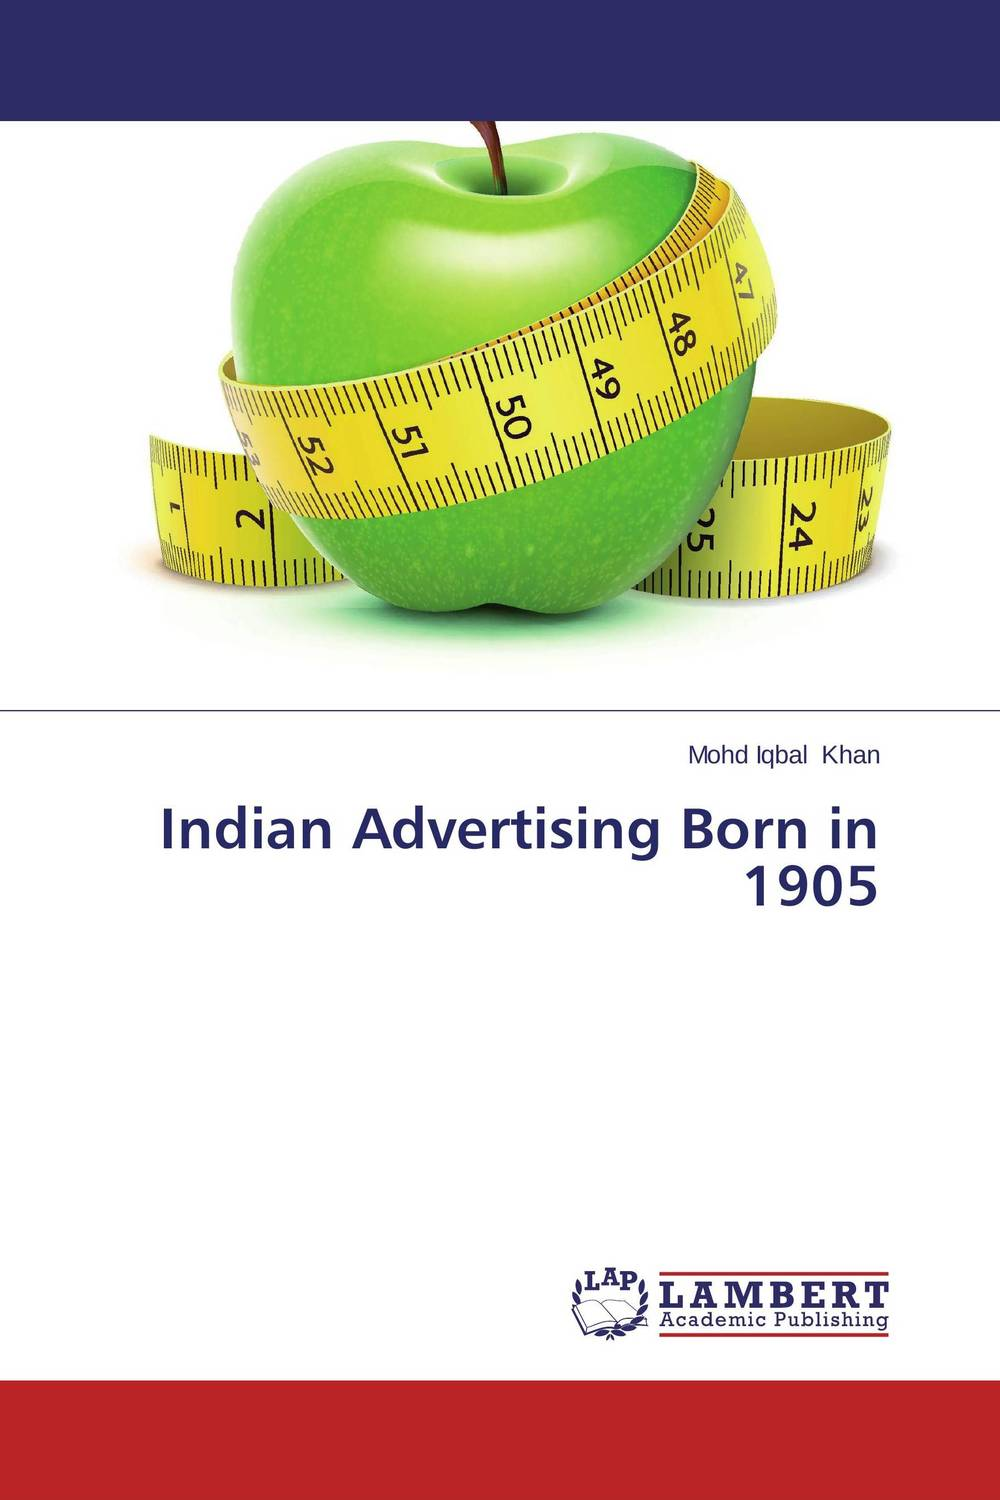 Indian Advertising Born in 1905